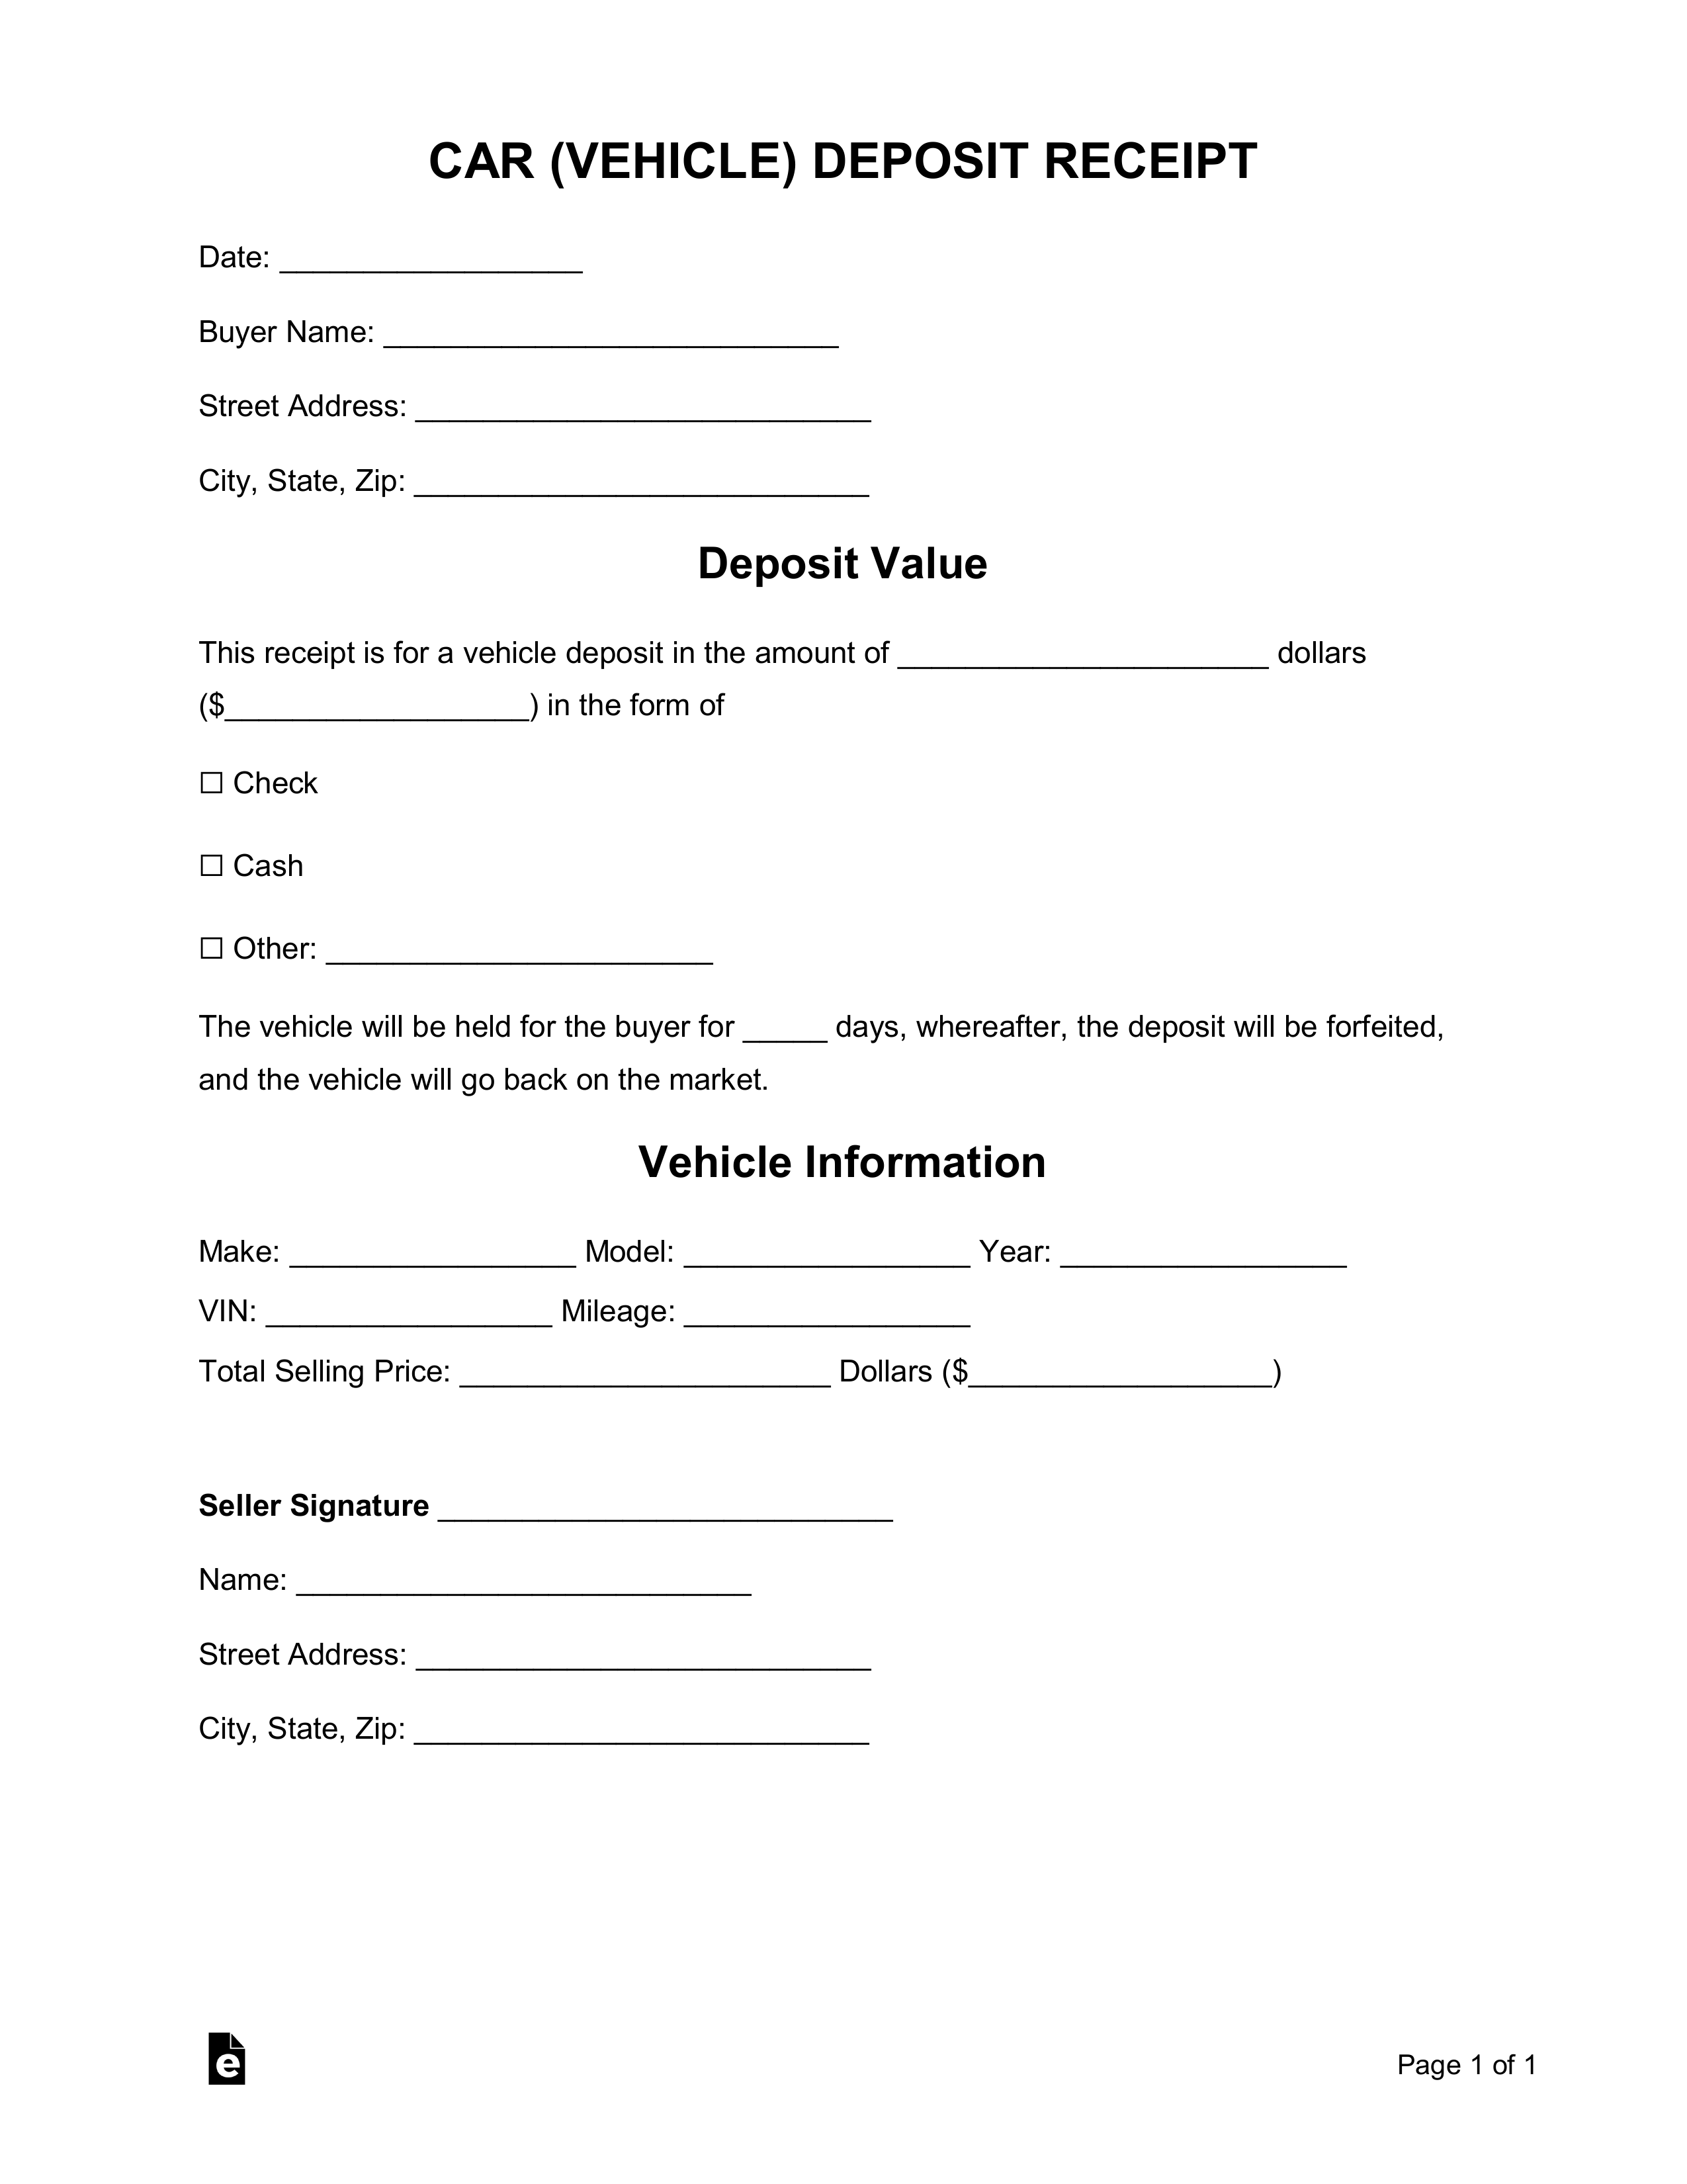 Free Car (Vehicle) Purchase Deposit Receipt Template - Word